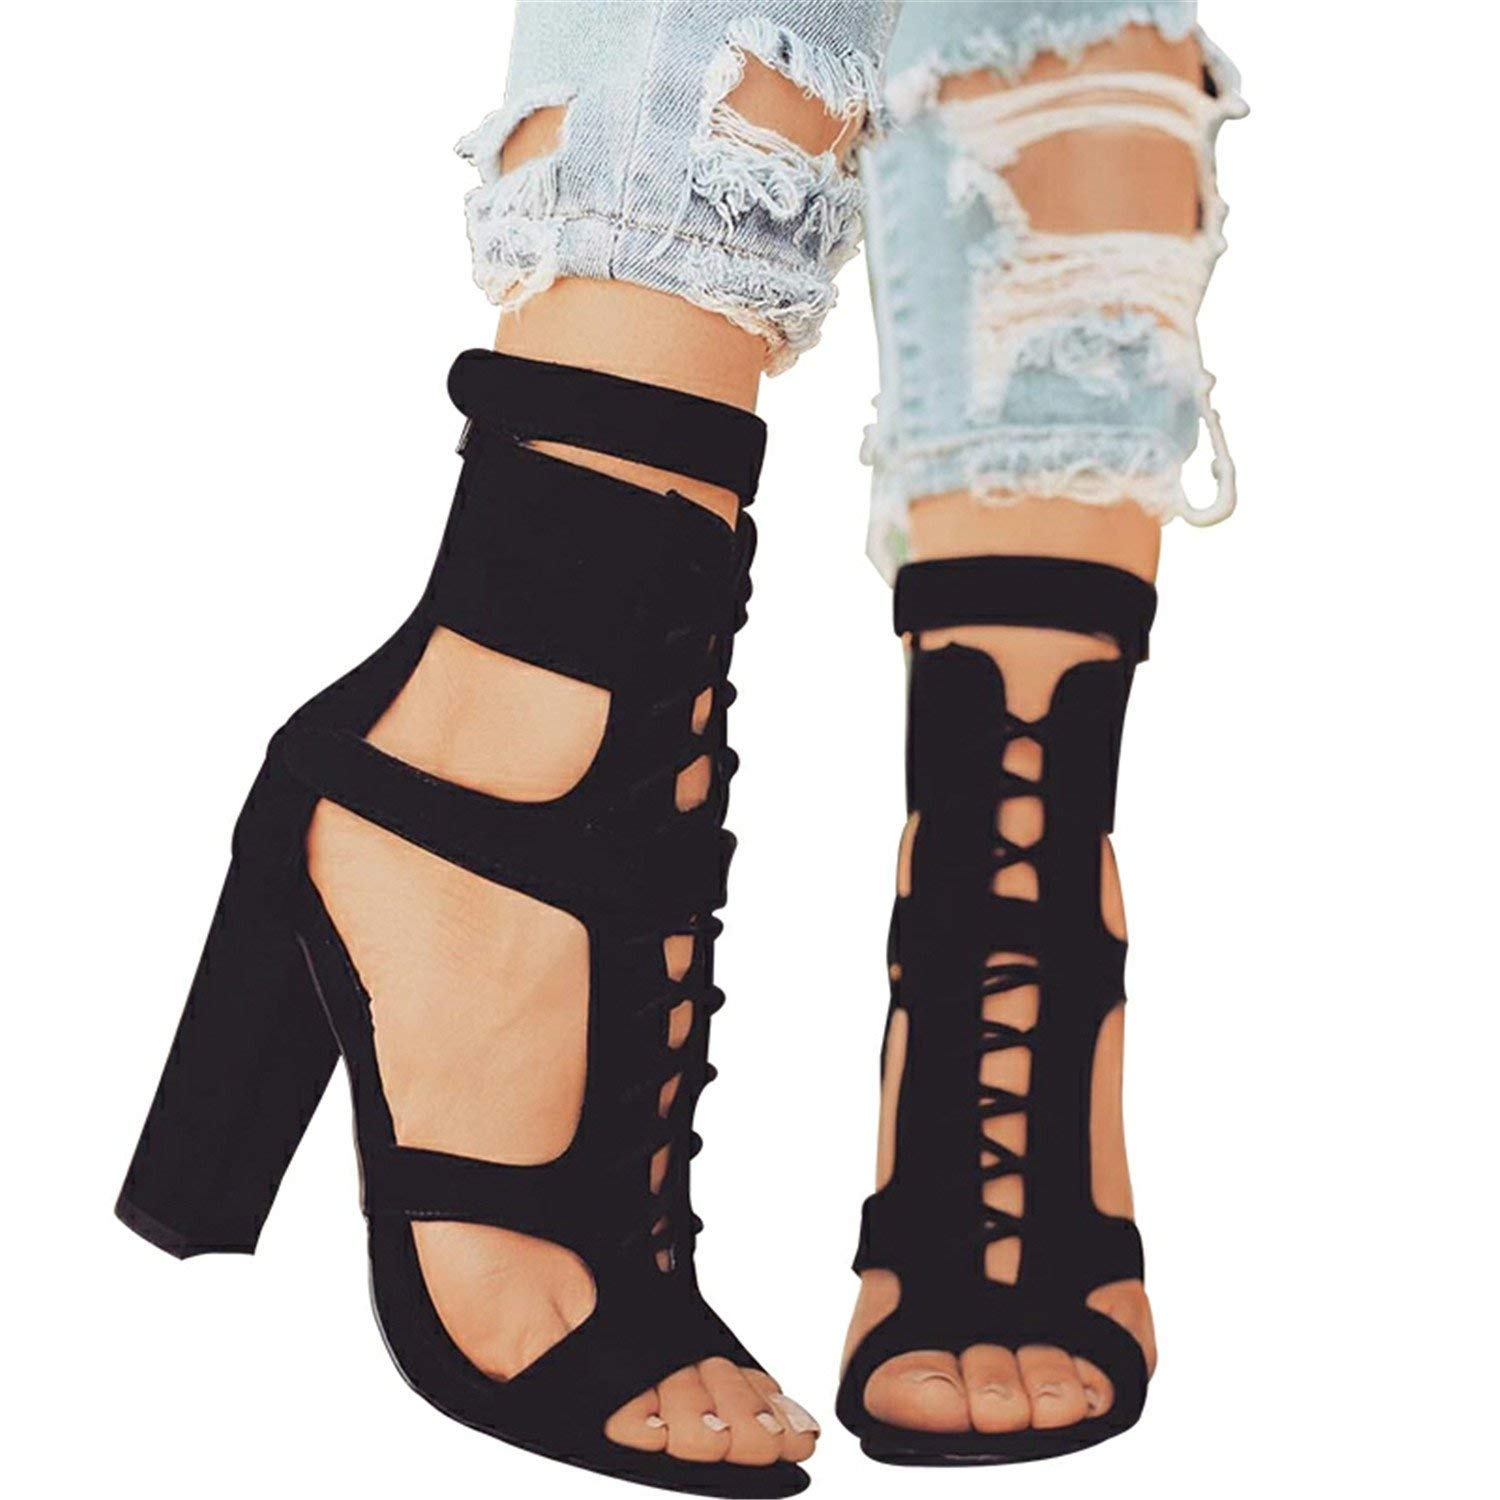 9b1df9fd7646 Get Quotations · Wind Flock Women Sandals Gladiator High Heels Strap Pumps  Lace-up Female Shoes Fashion Summer